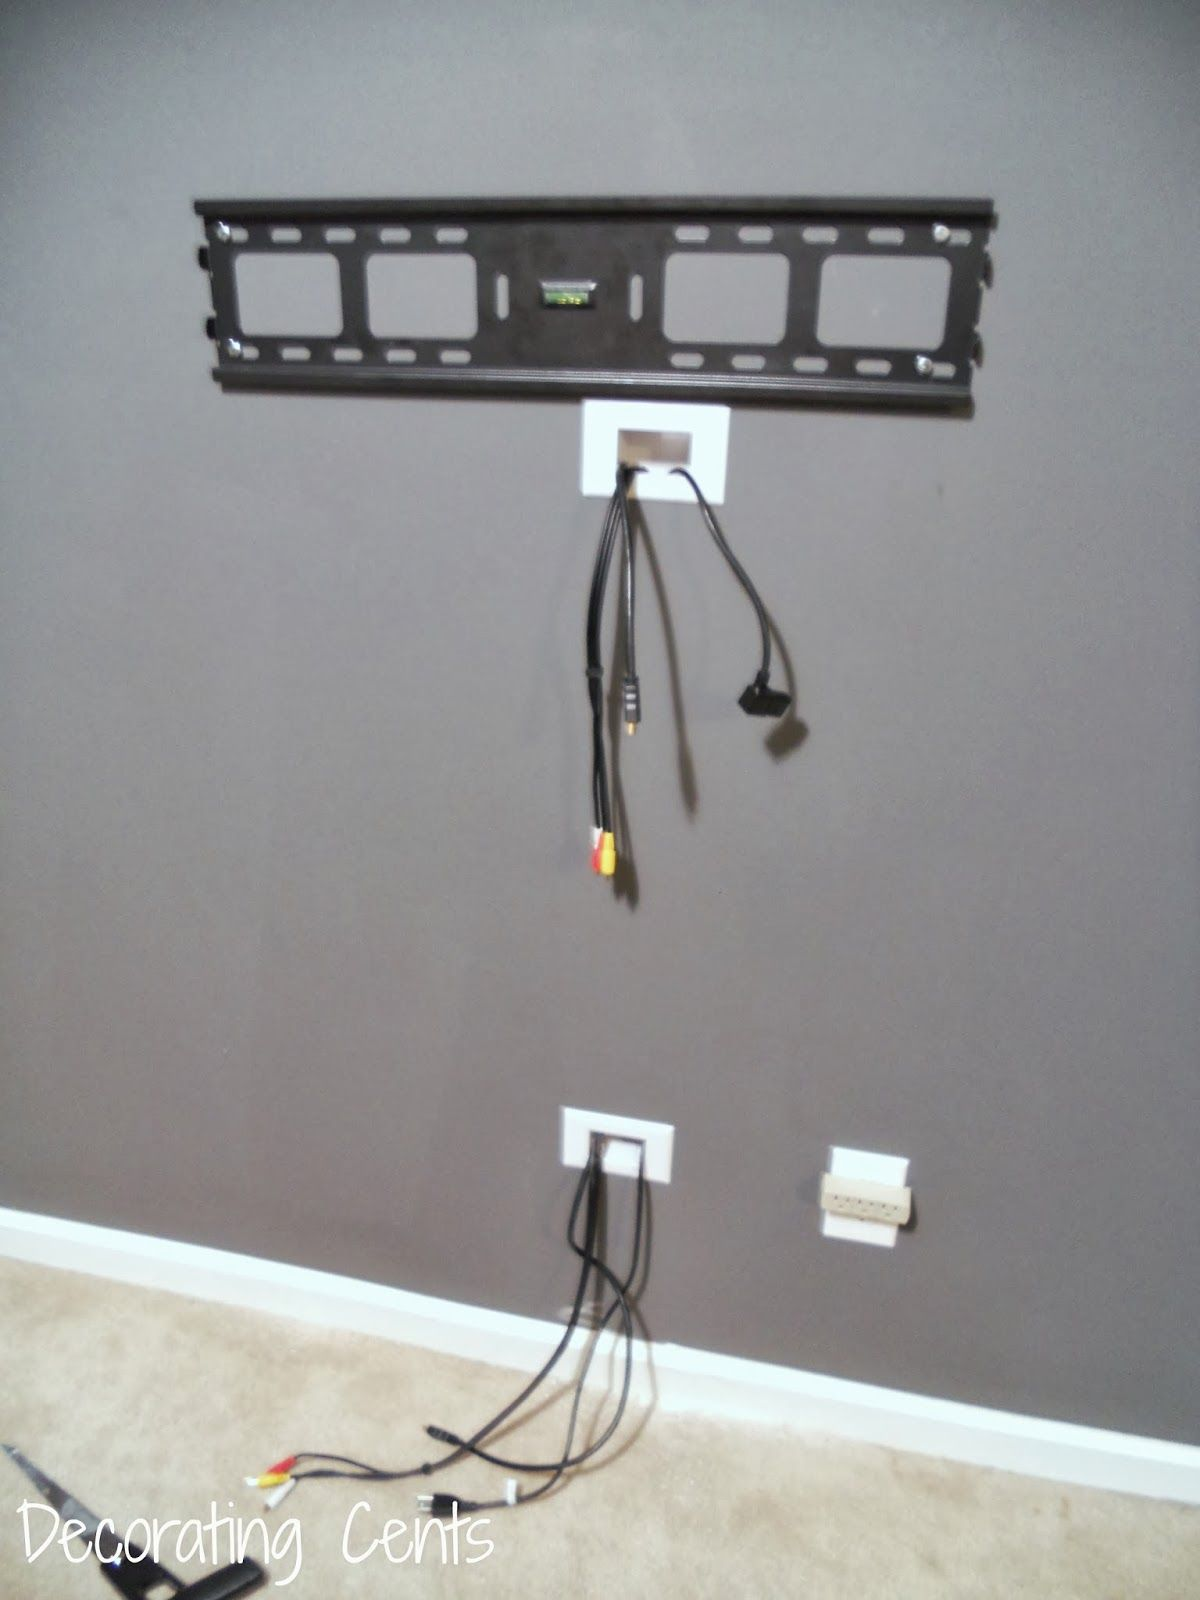 hight resolution of decorating cents wall mounted tv and hiding the cords home wall tv and component wiring guide tv in wall wiring diagram